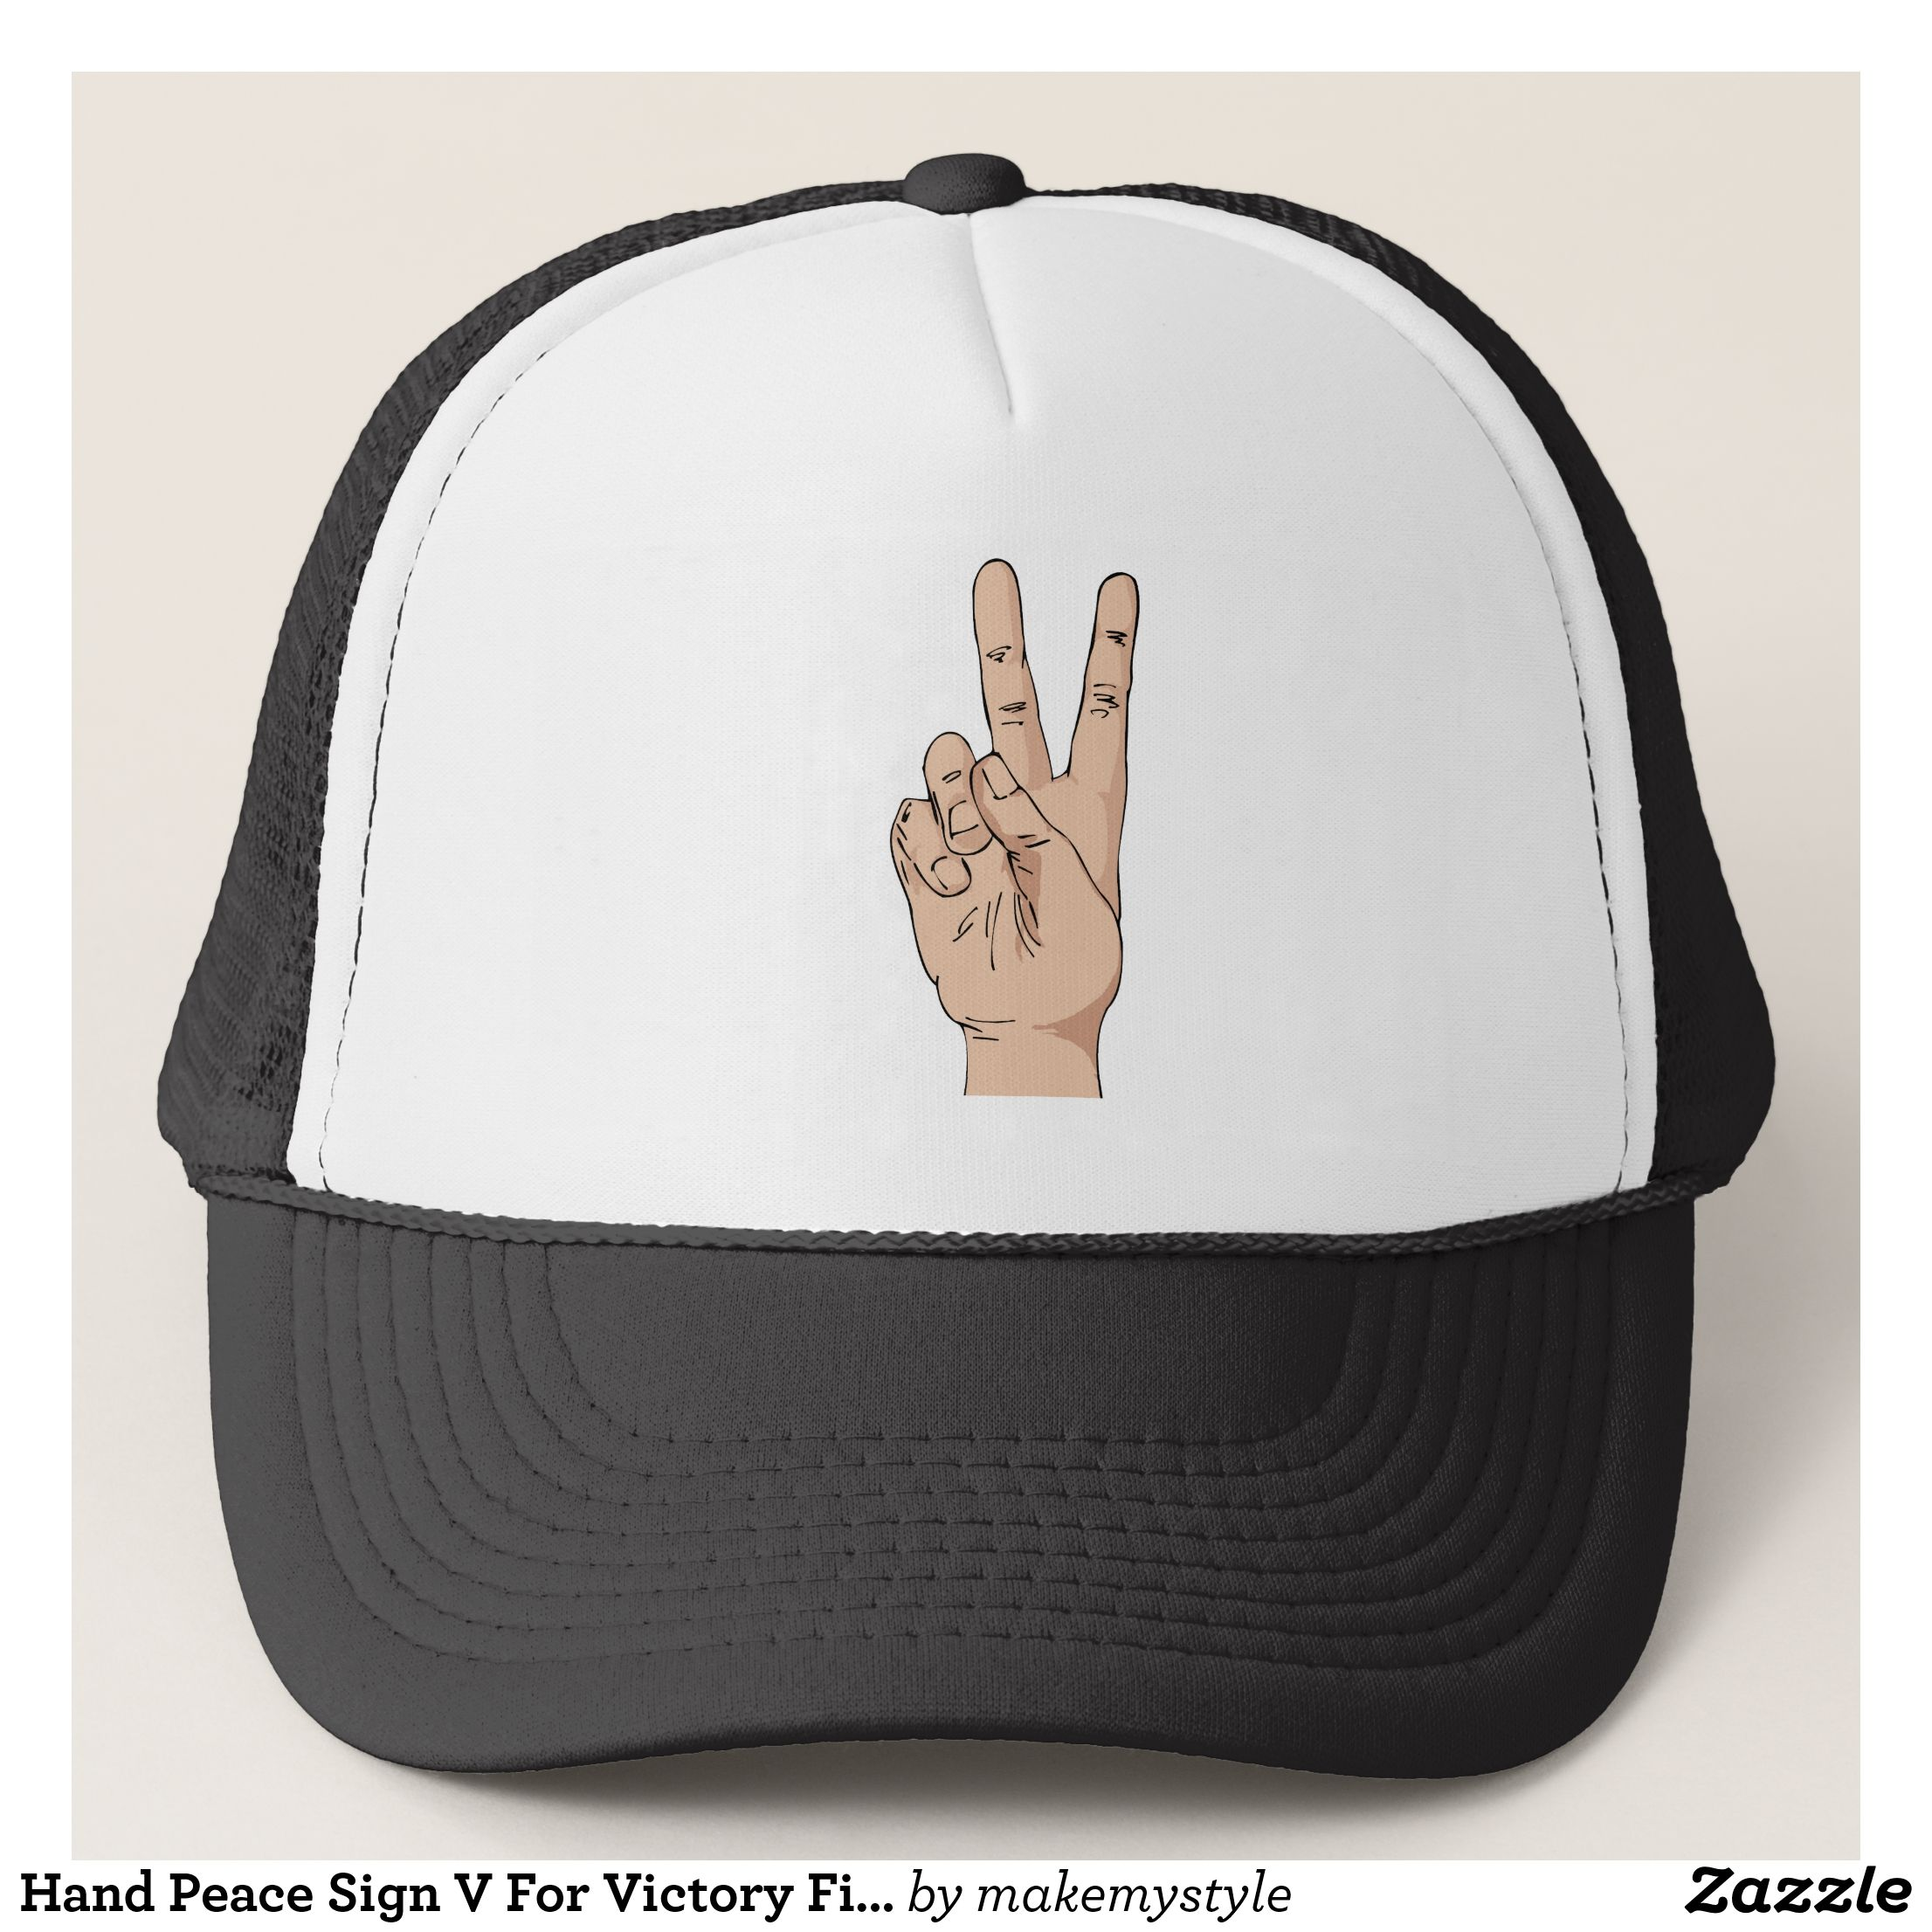 Hand Peace Sign V For Victory Fingers Anatomy Trucker Hat | Trucker hats